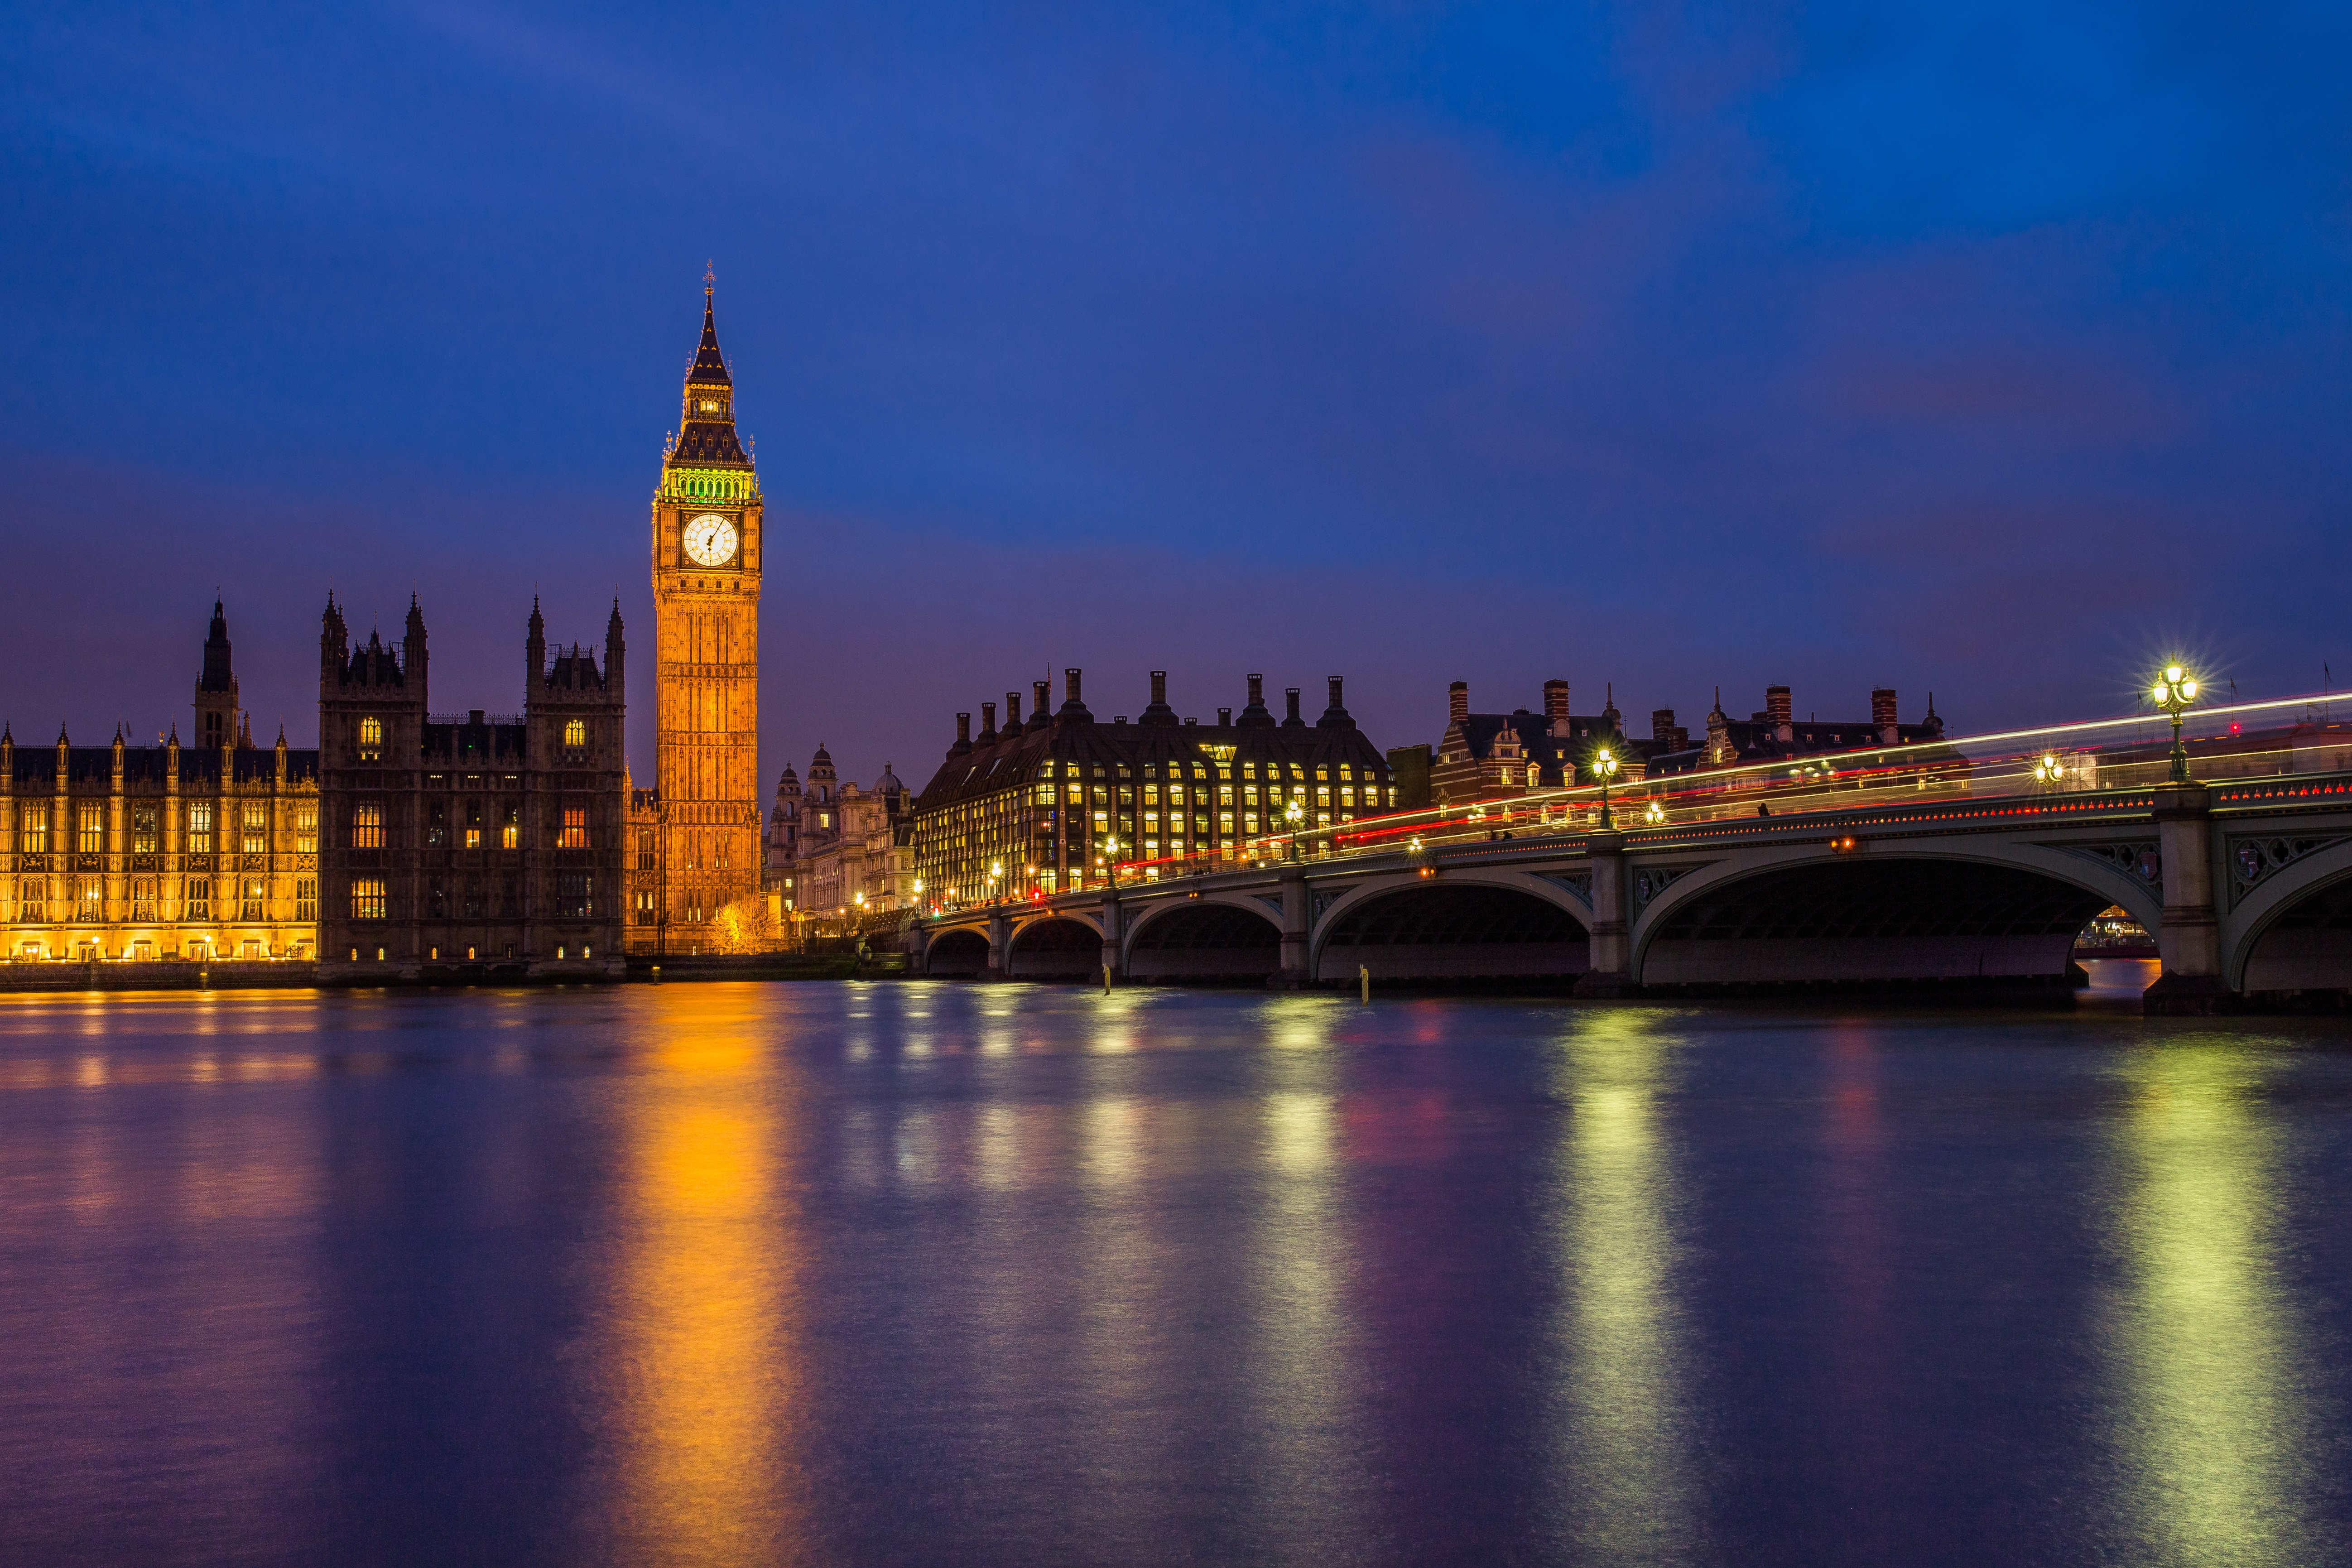 Space Hd Wallpapers 1080p London Tower London At Night Free Stock Photo Negativespace